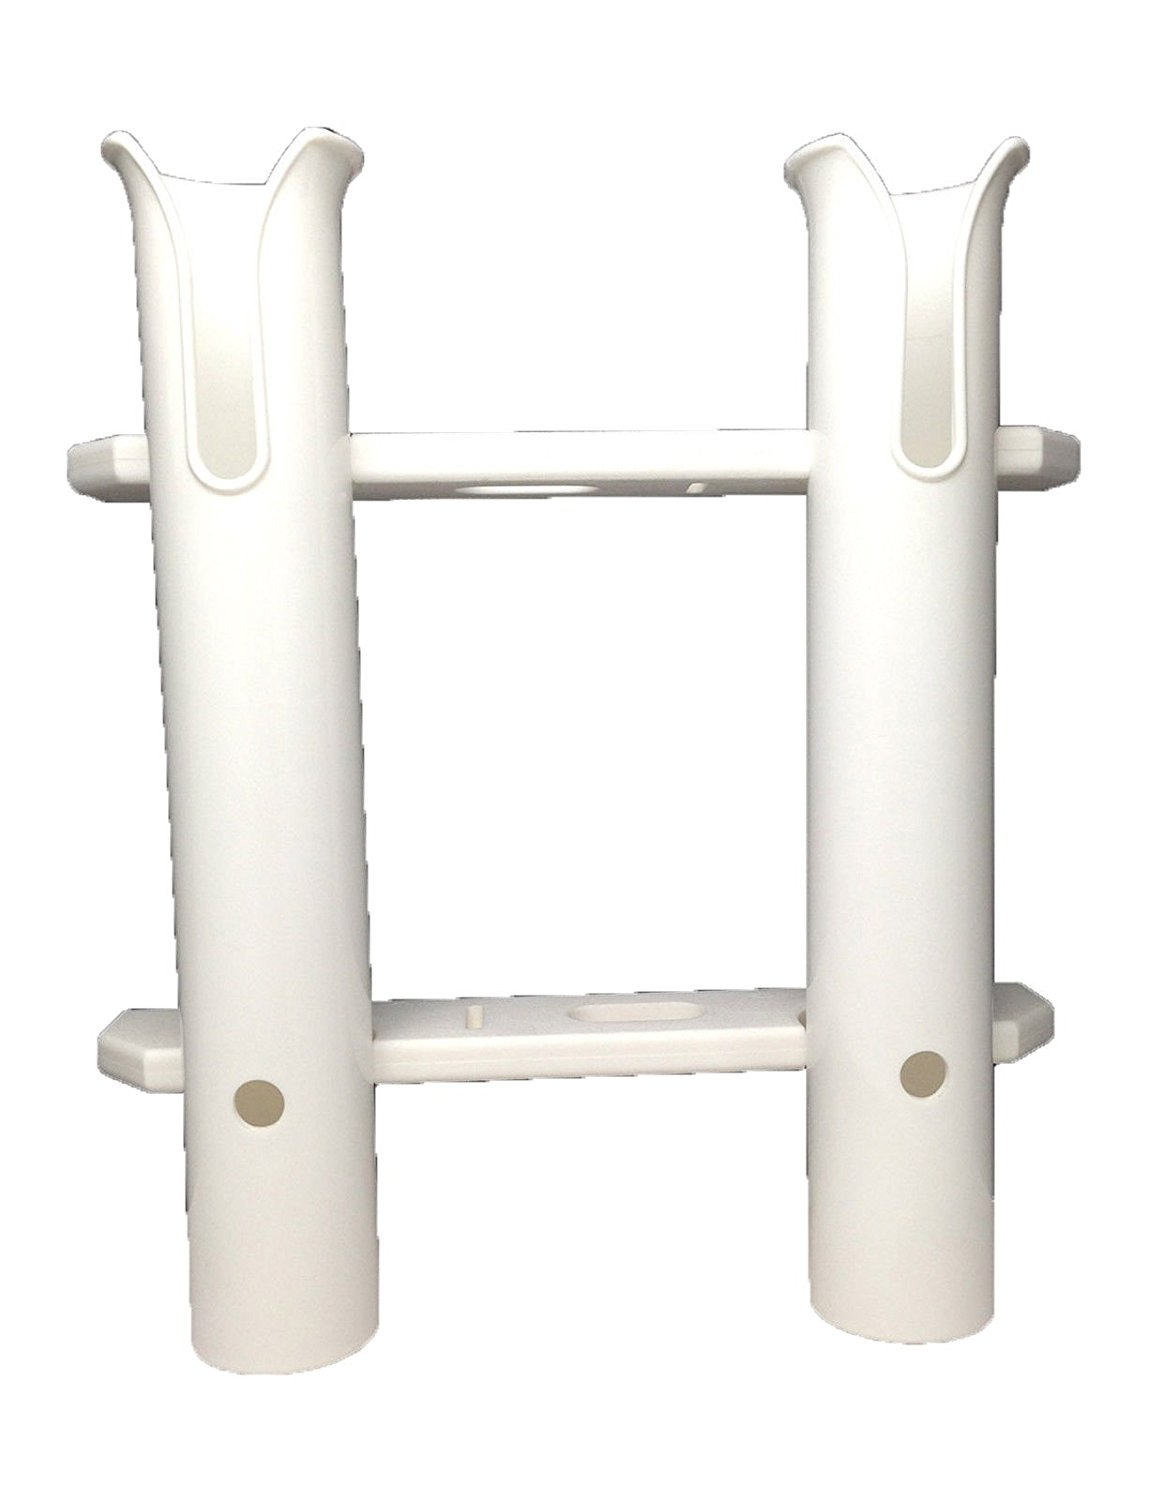 Pactrade Marine Boat White UV Stabilized Plastic Fishing Rod Holder Two Tube Dual by